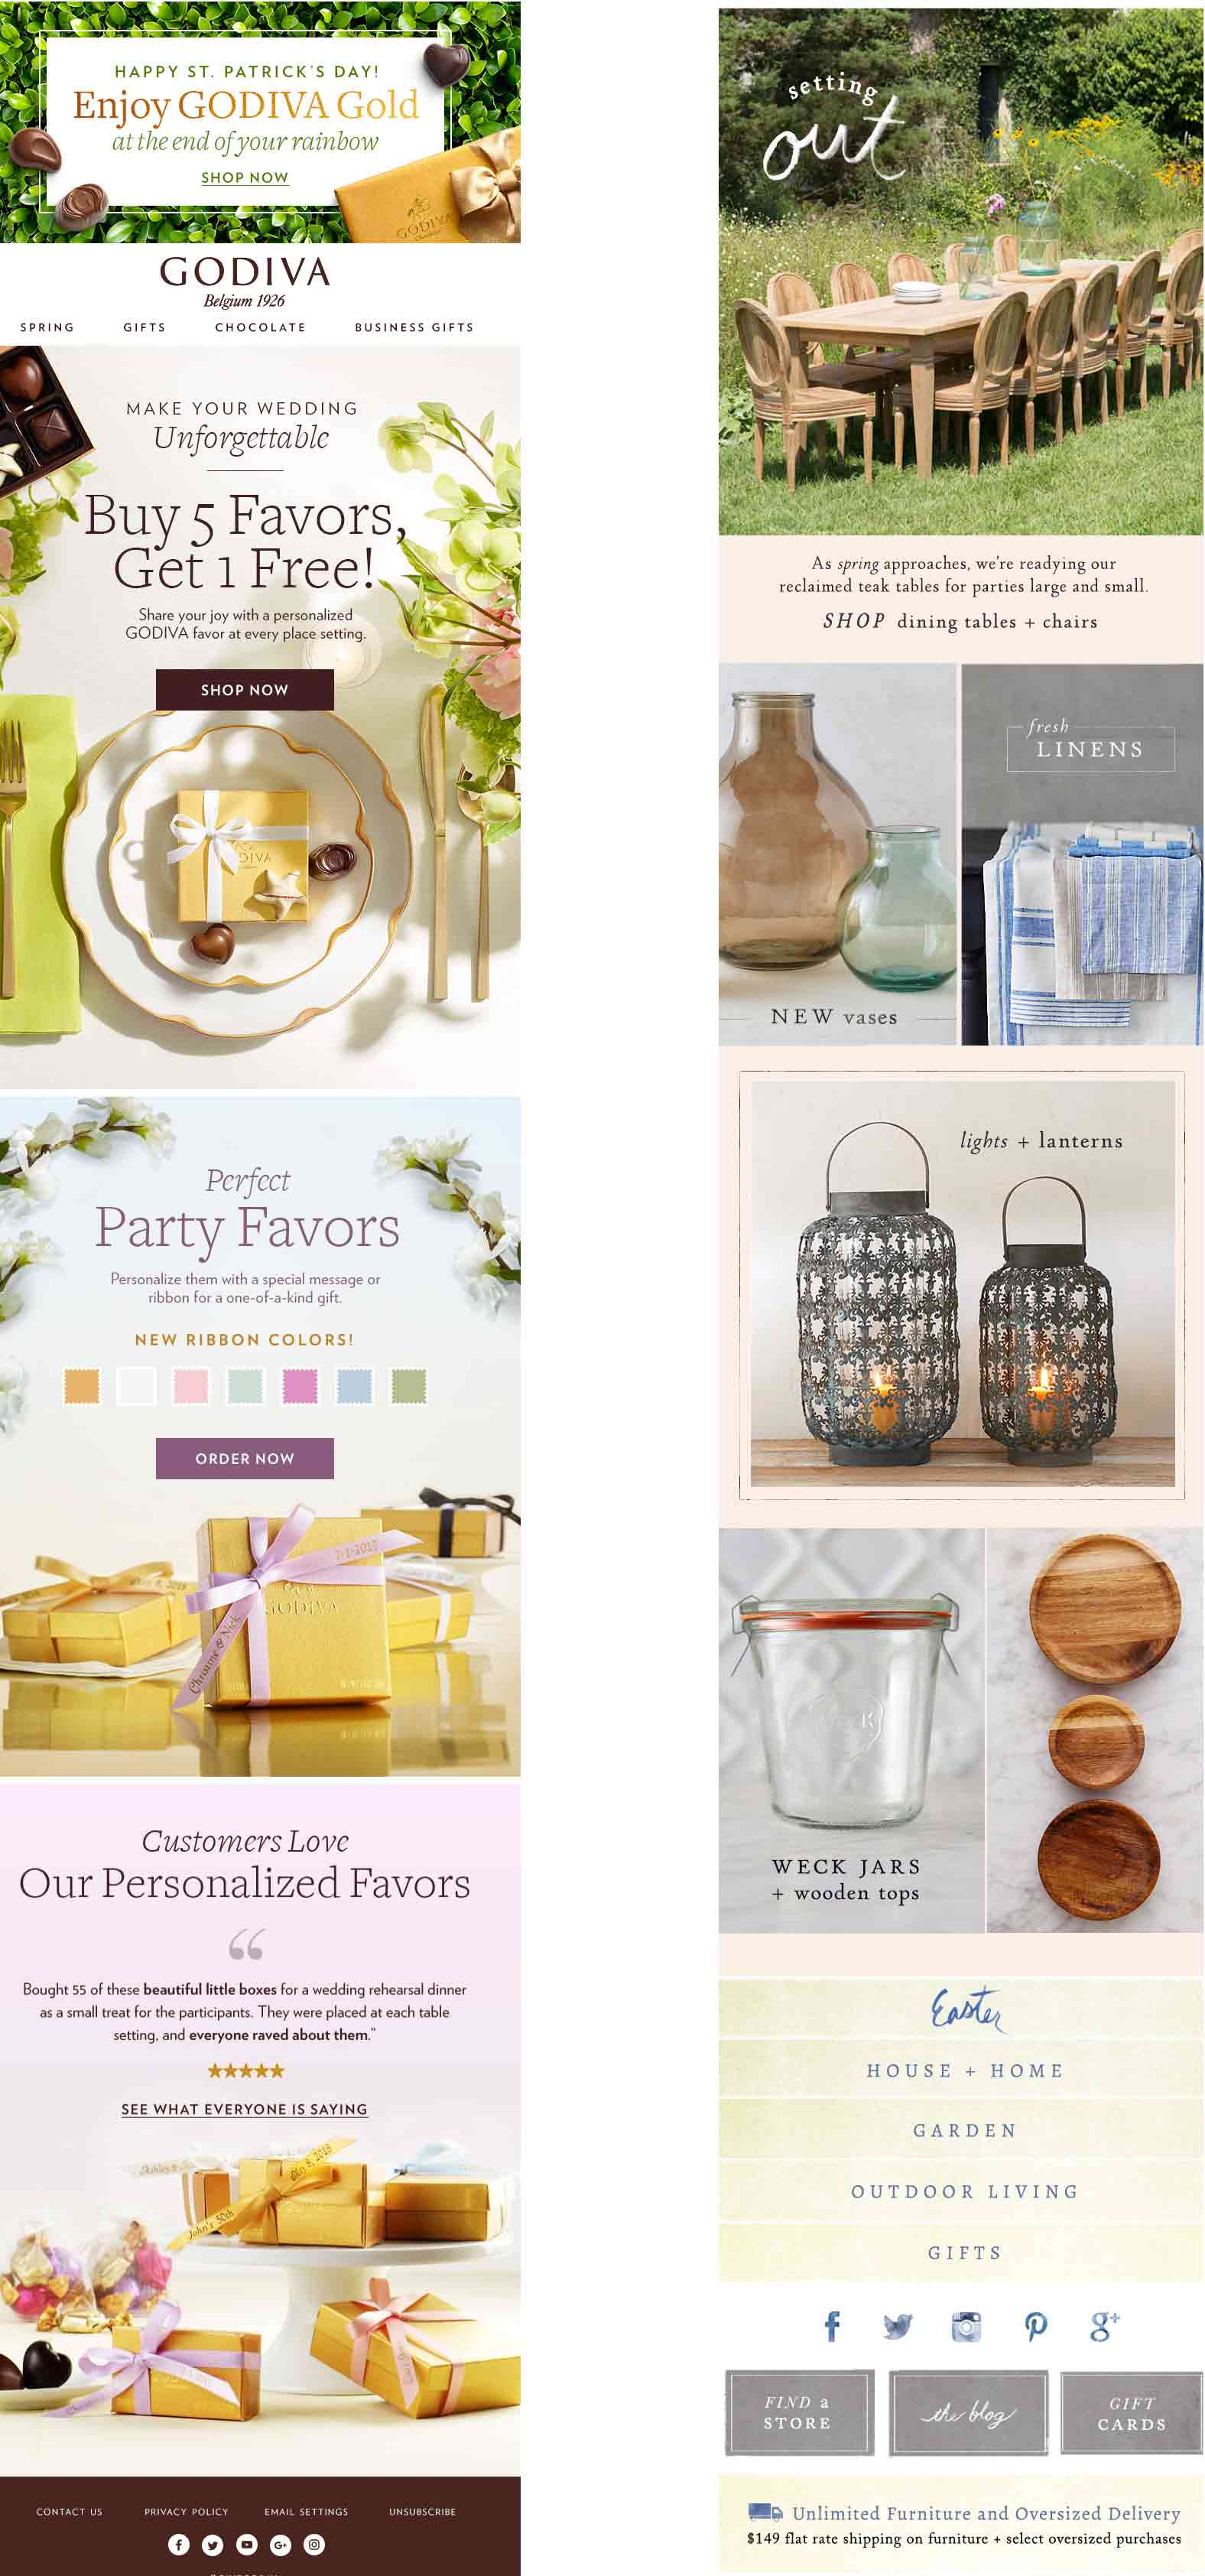 Reusable Template Or Oneoff Email Templates Take Your Pick - Buy email templates